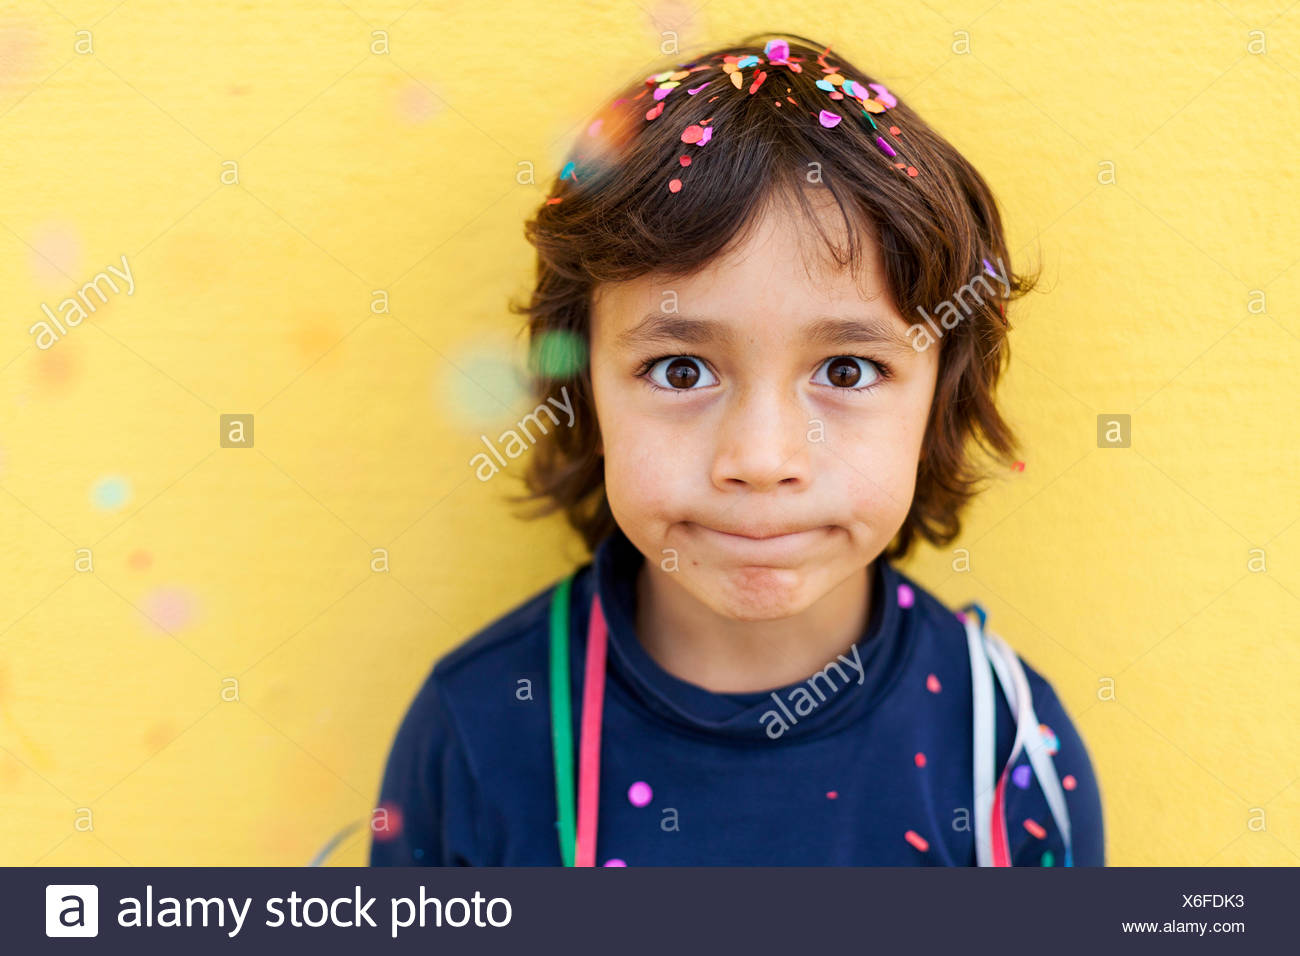 Little boy pulling funny face in front of yellow wall while confetti falling down on him - Stock Image